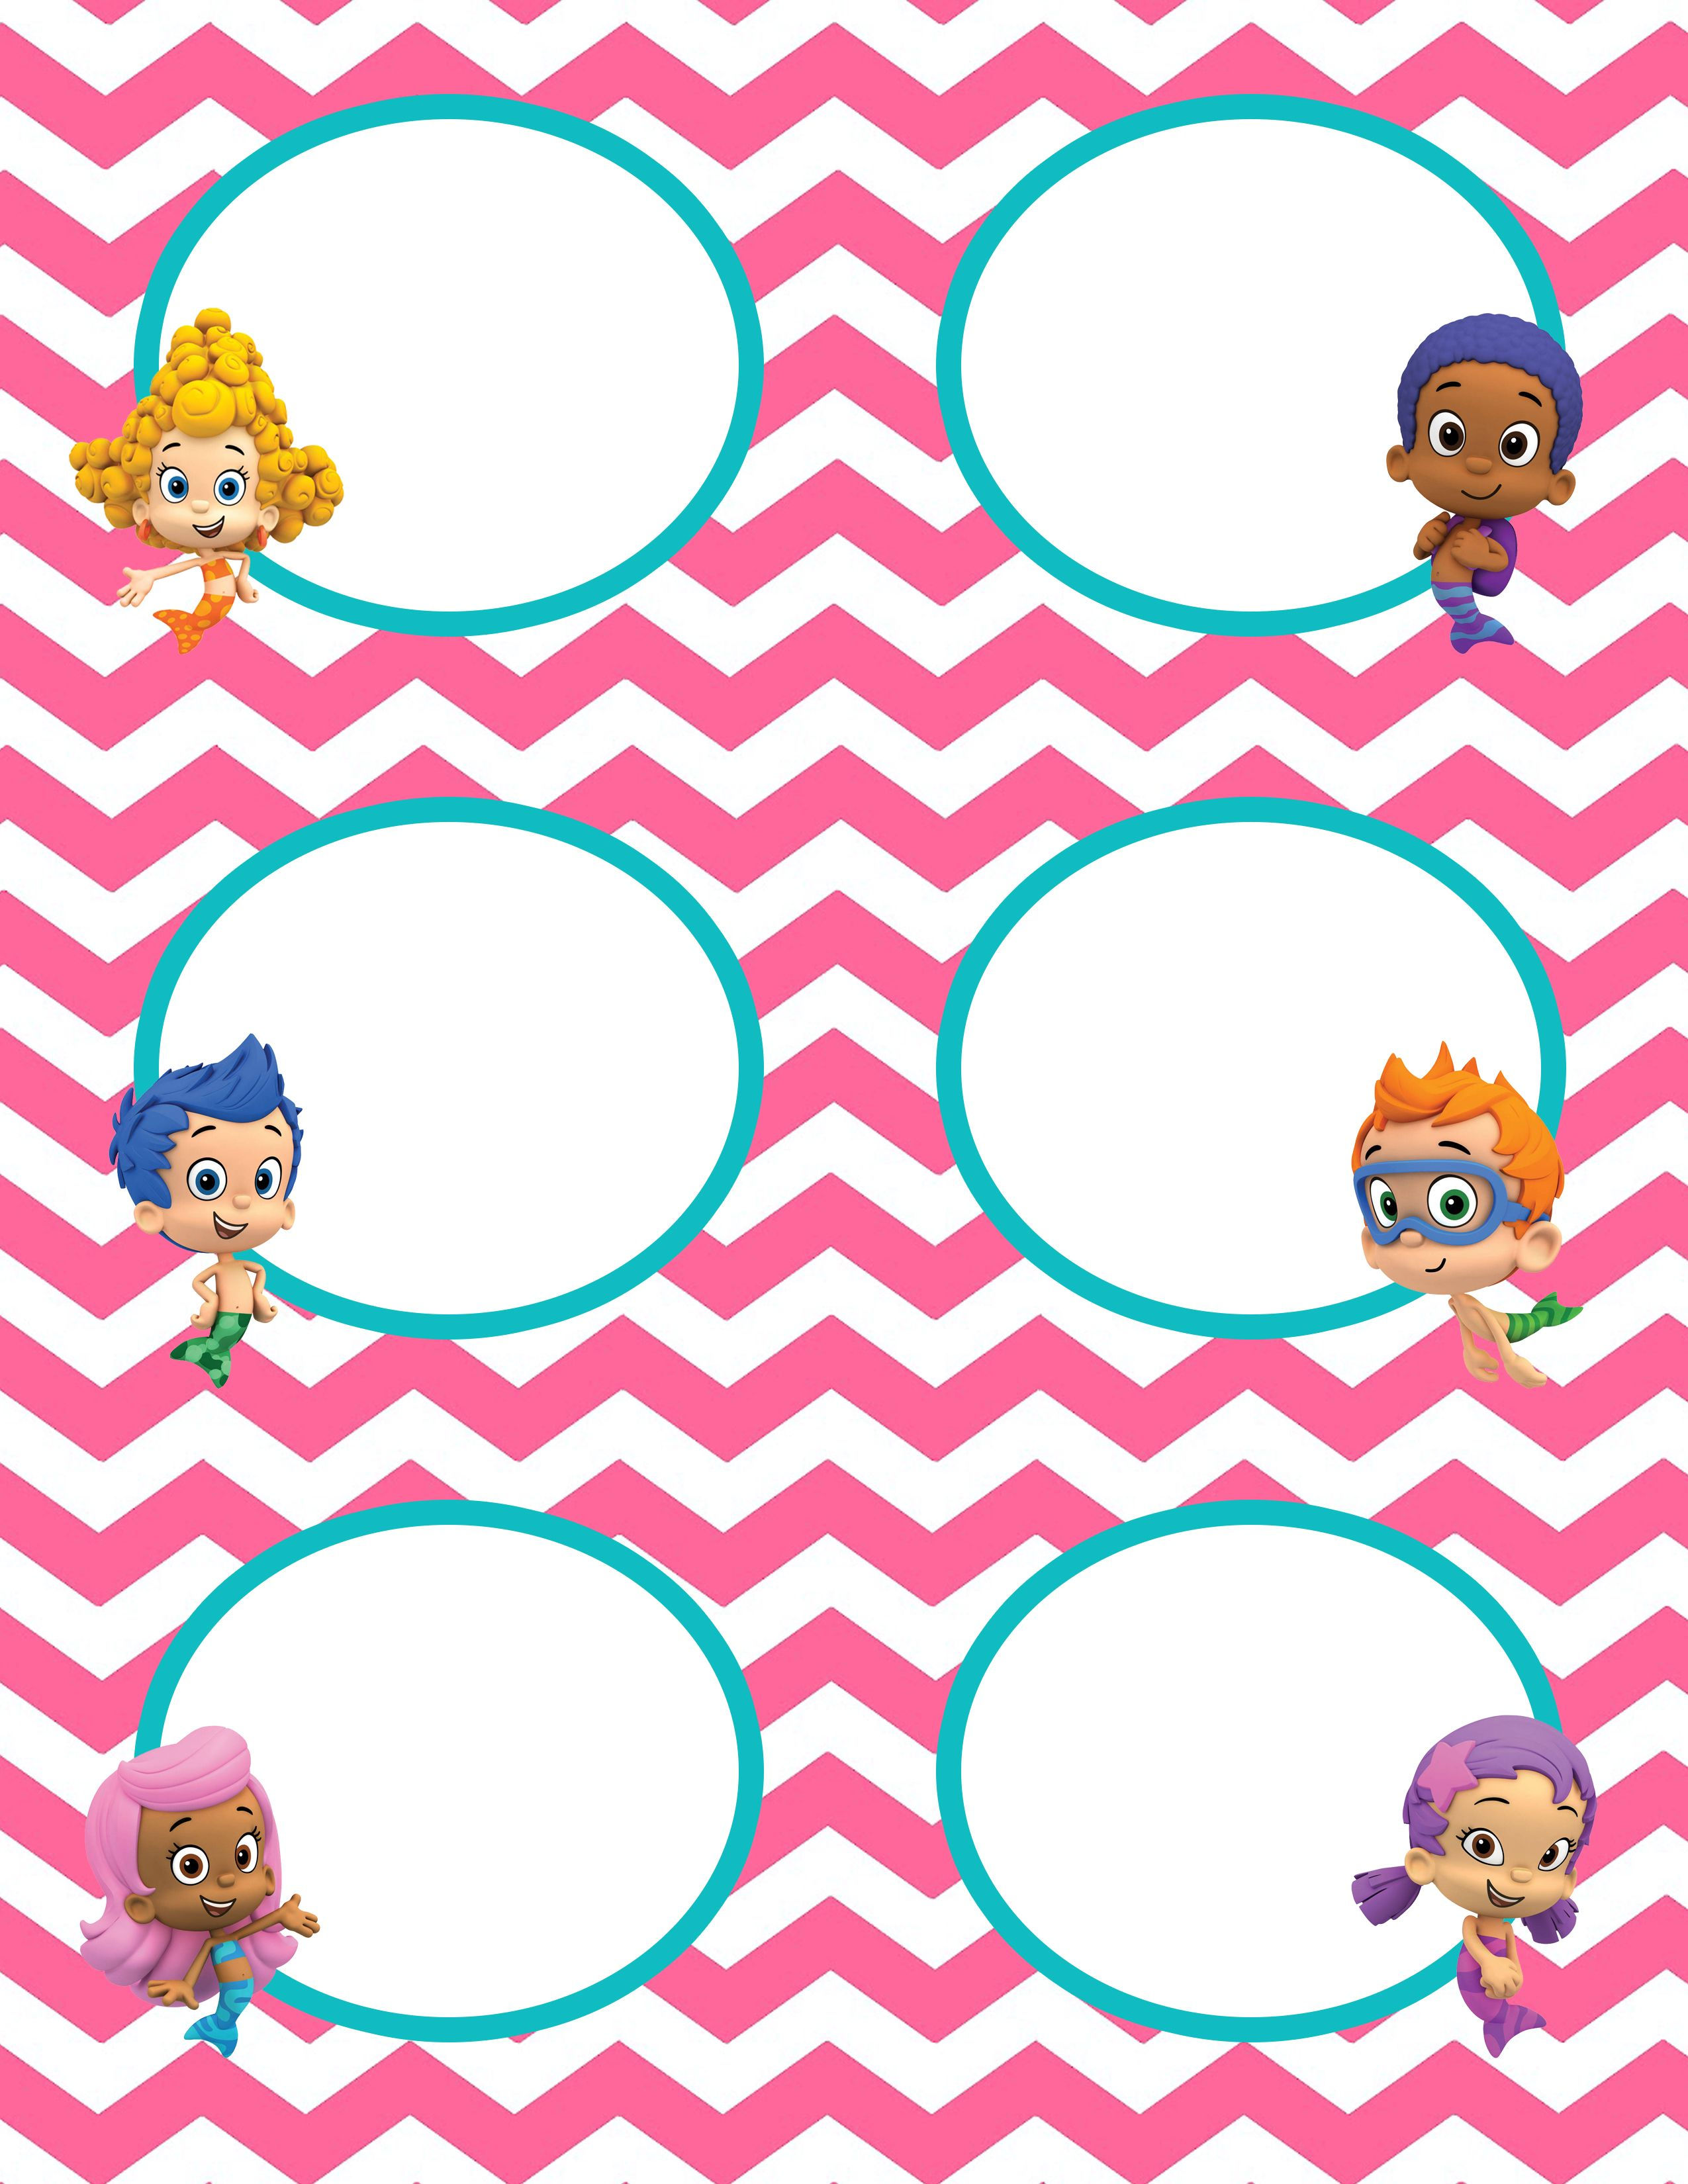 Bubble Guppies Tags Just Sharing Some Tags I Created For